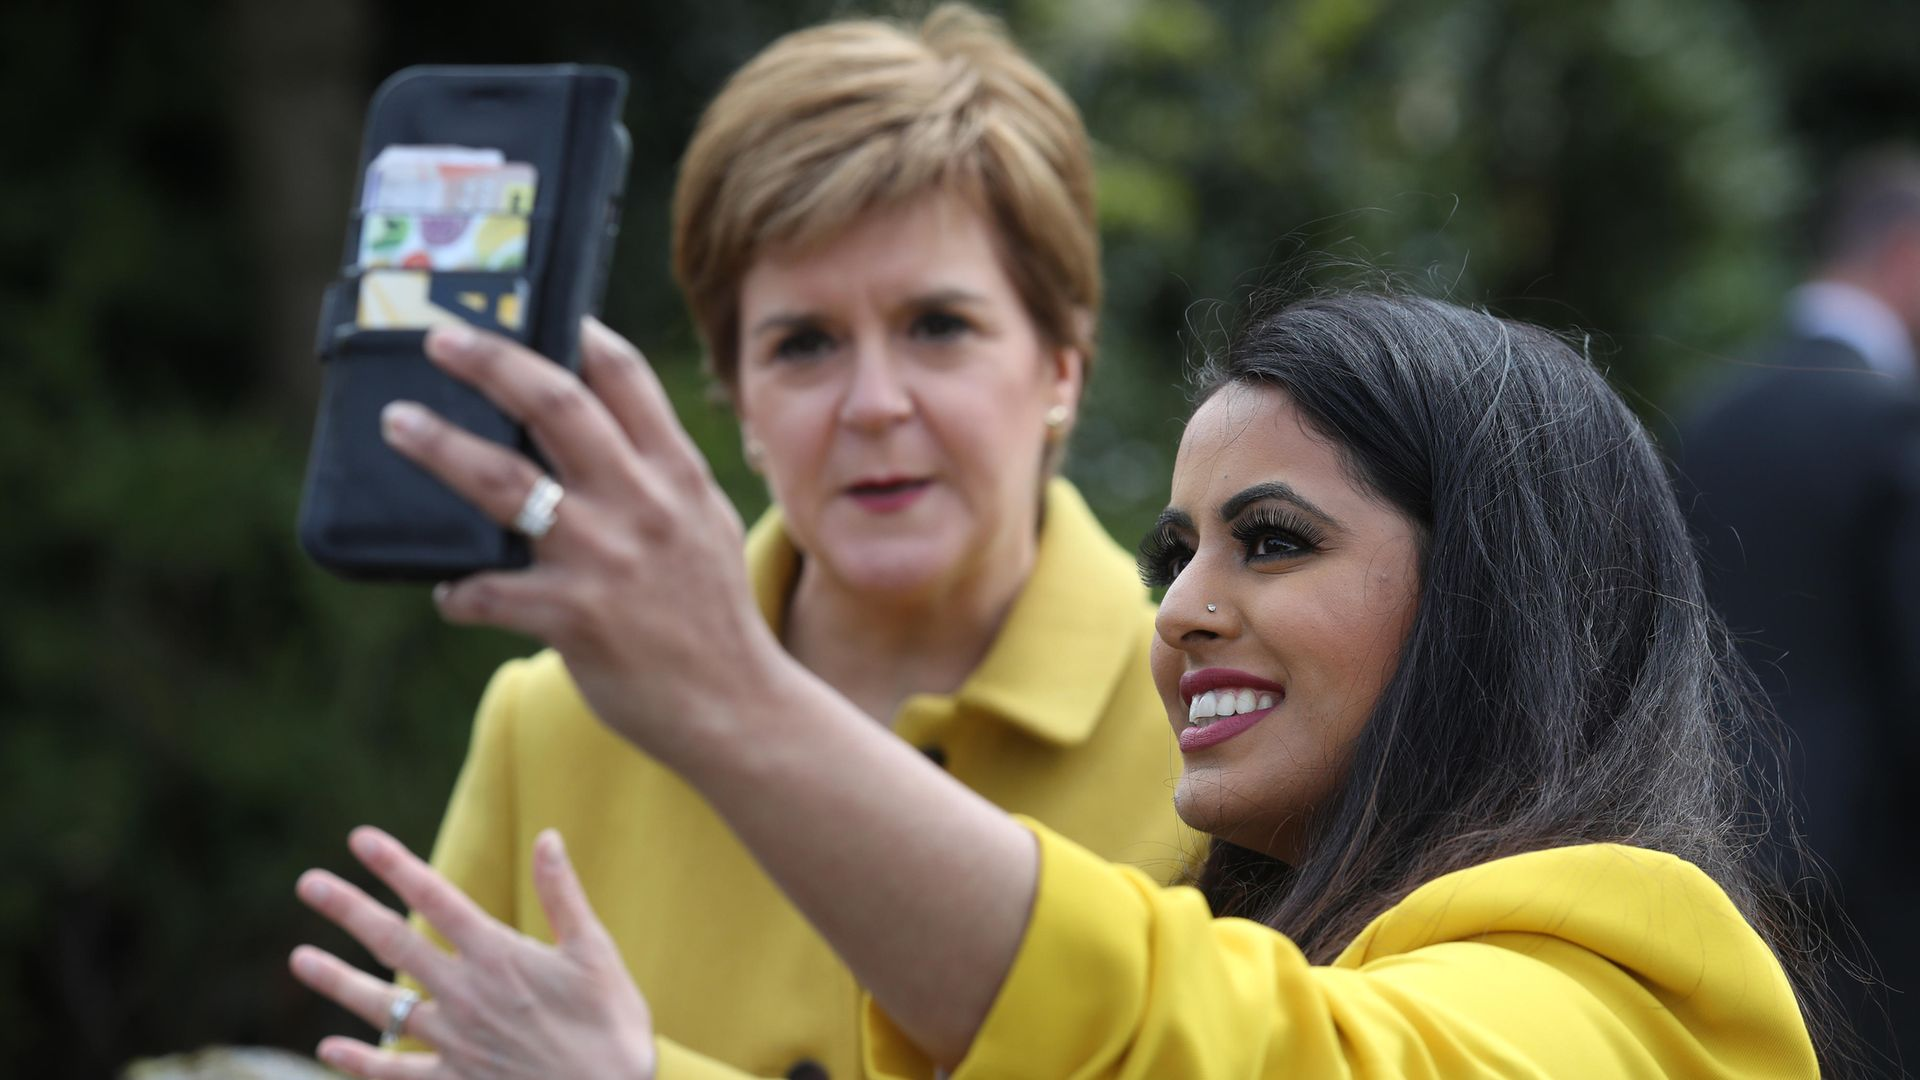 Nicola Sturgeon with Anum Qaisar-Javed, the SNP candidate for the Airdrie and Shotts by-election - Credit: PA